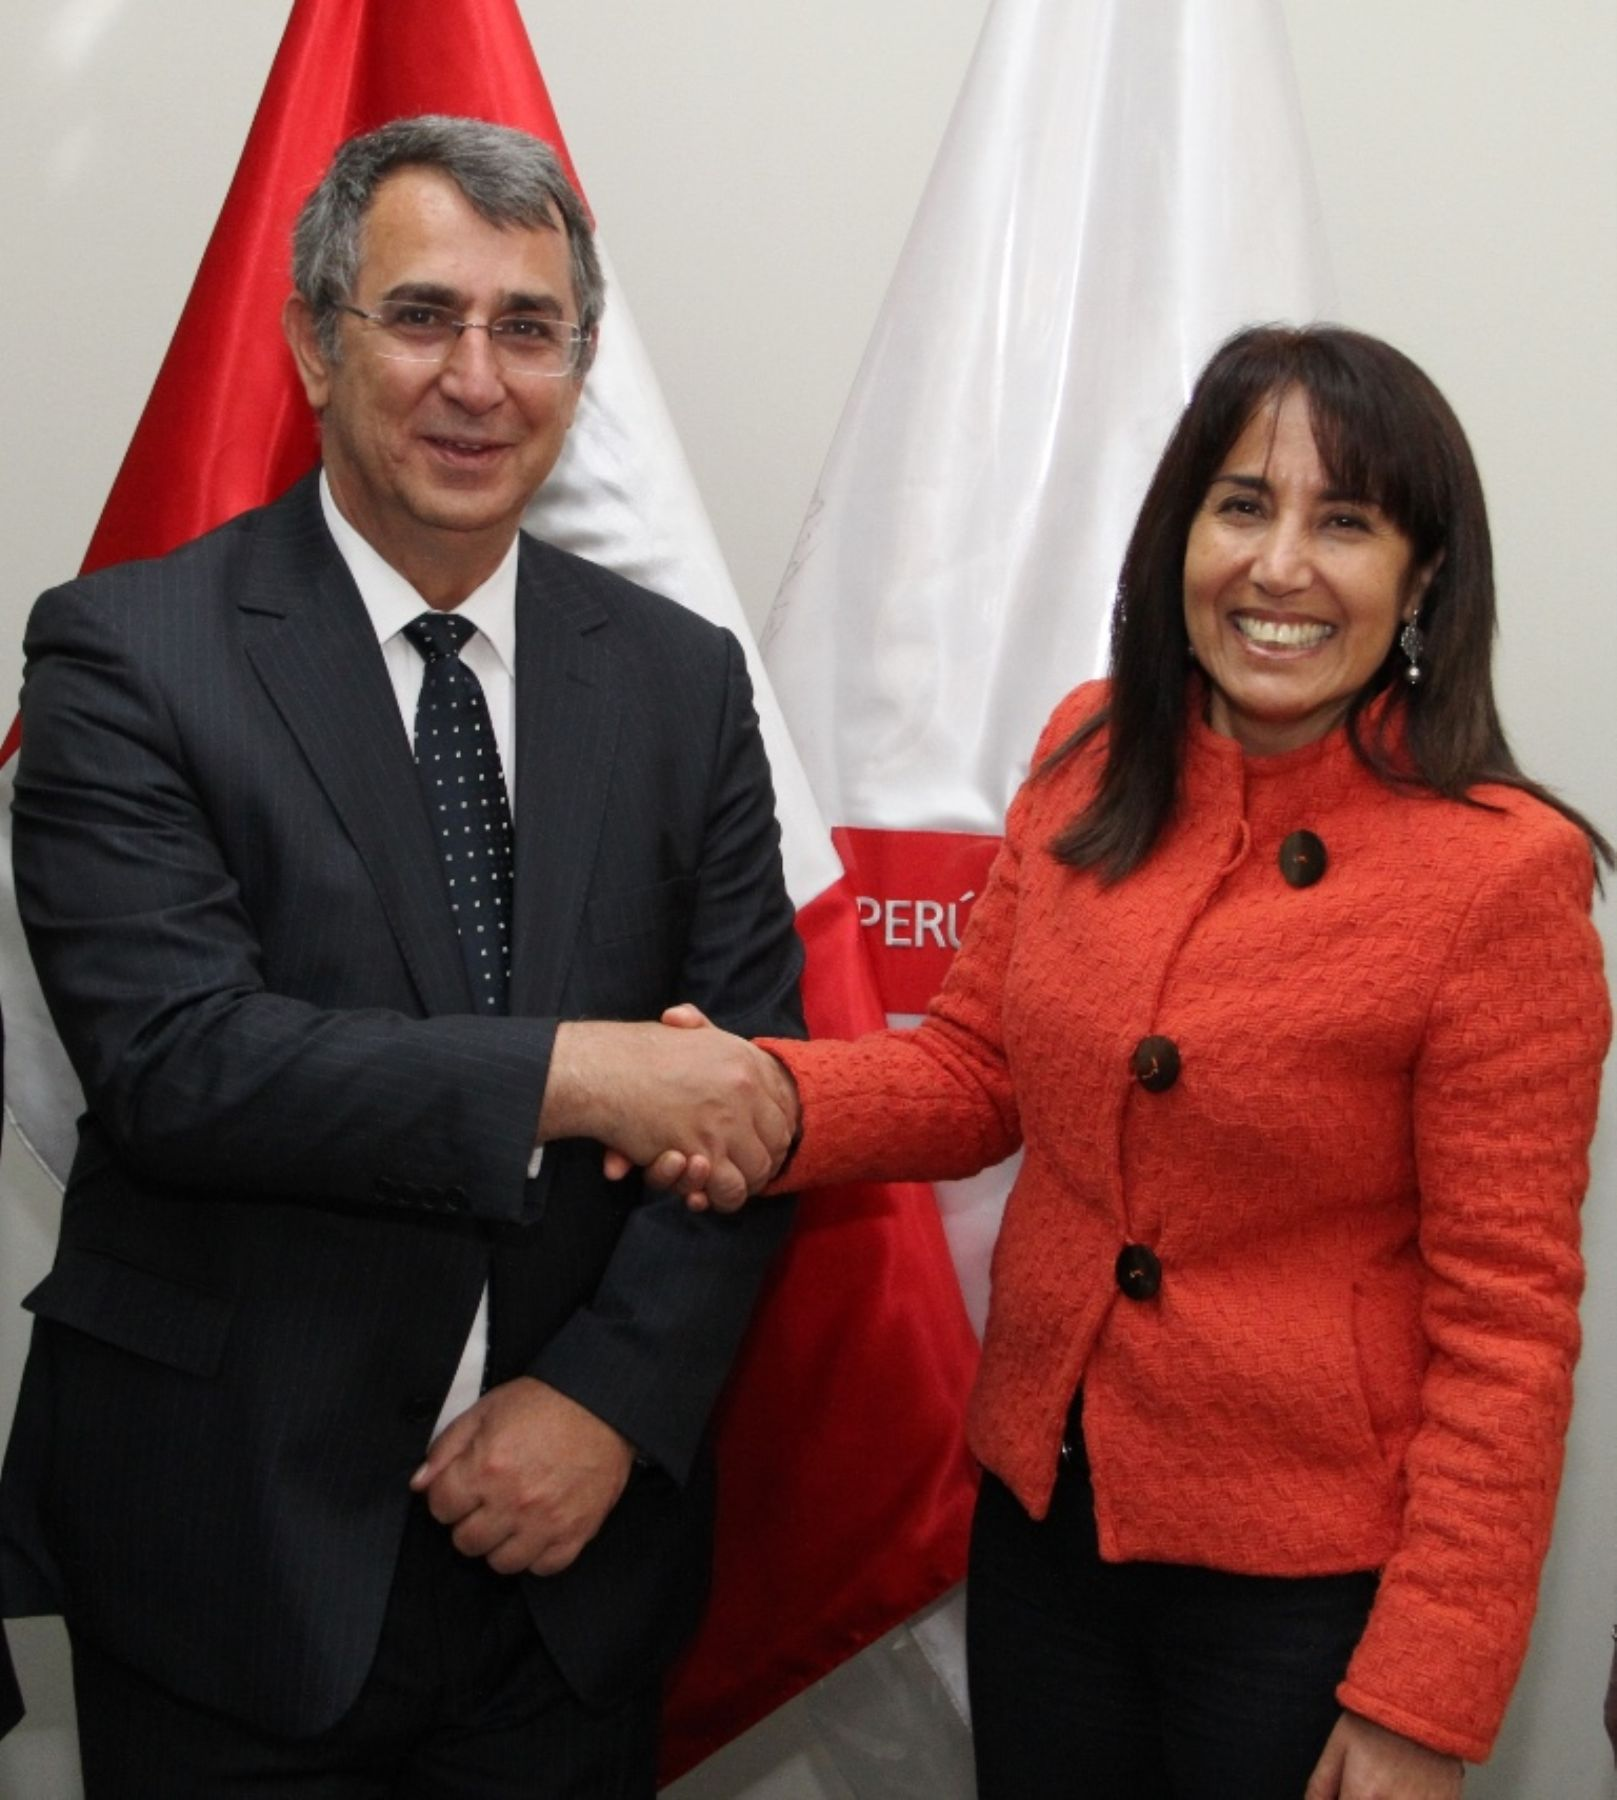 Peruvian Minister of Foreign Trade and Tourism Magali Silva shakes hands with Turkish Ambassador to Peru, Namik Güner. Photo: Mincetur.